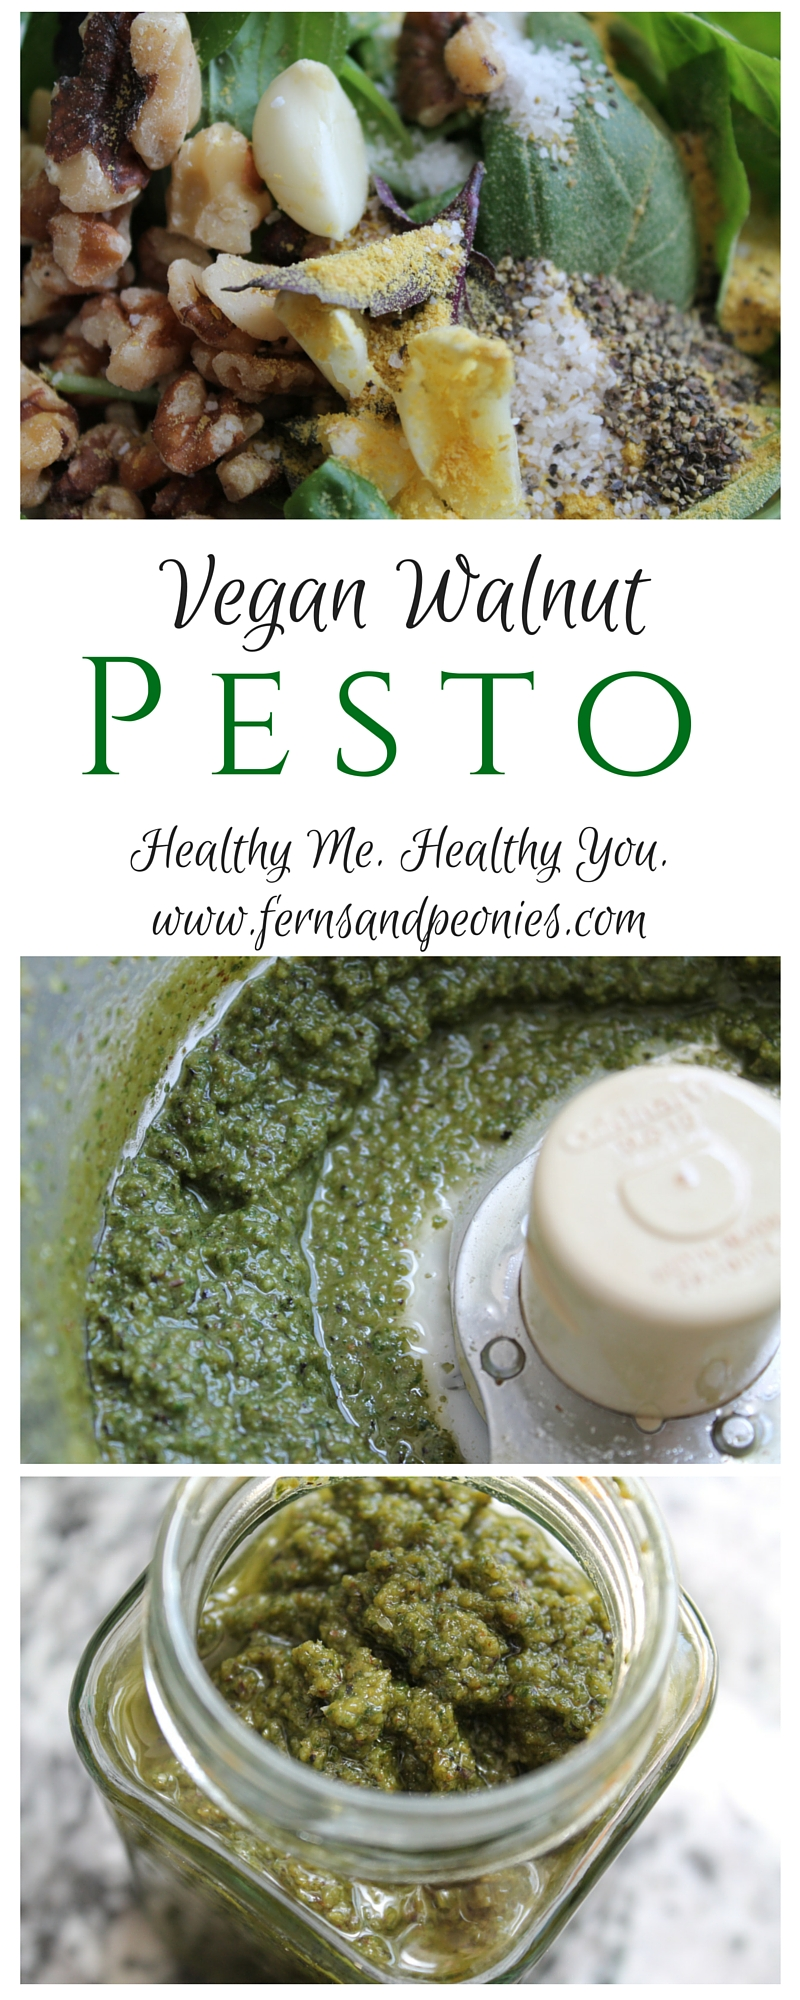 Make a lifestyle change with The Clean 66 Plan - it actually takes around 66 days to form a new habit. Get started with my Mediterranean Zucchini Noodles with Vegan Walnut Pesto. Find this and more on the blog at www.fernsandpeonies.com